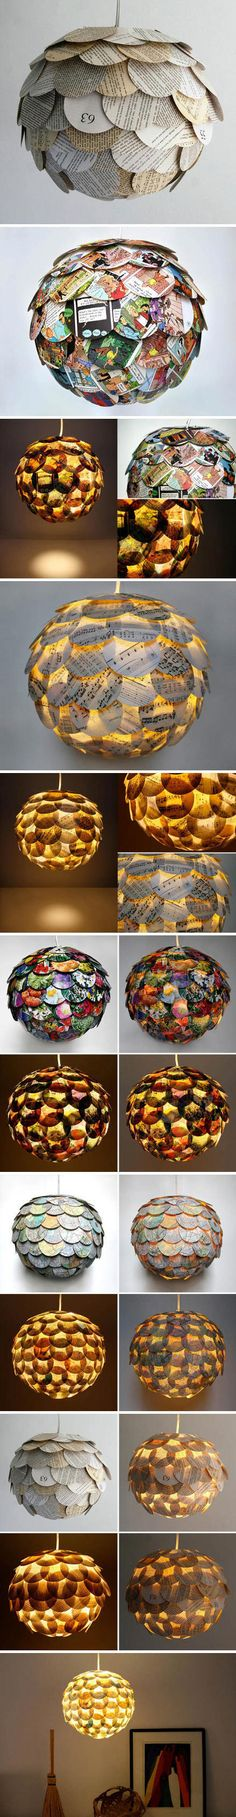 Allison Patrick lamps made of paper #diy #lamp #paper_lamp